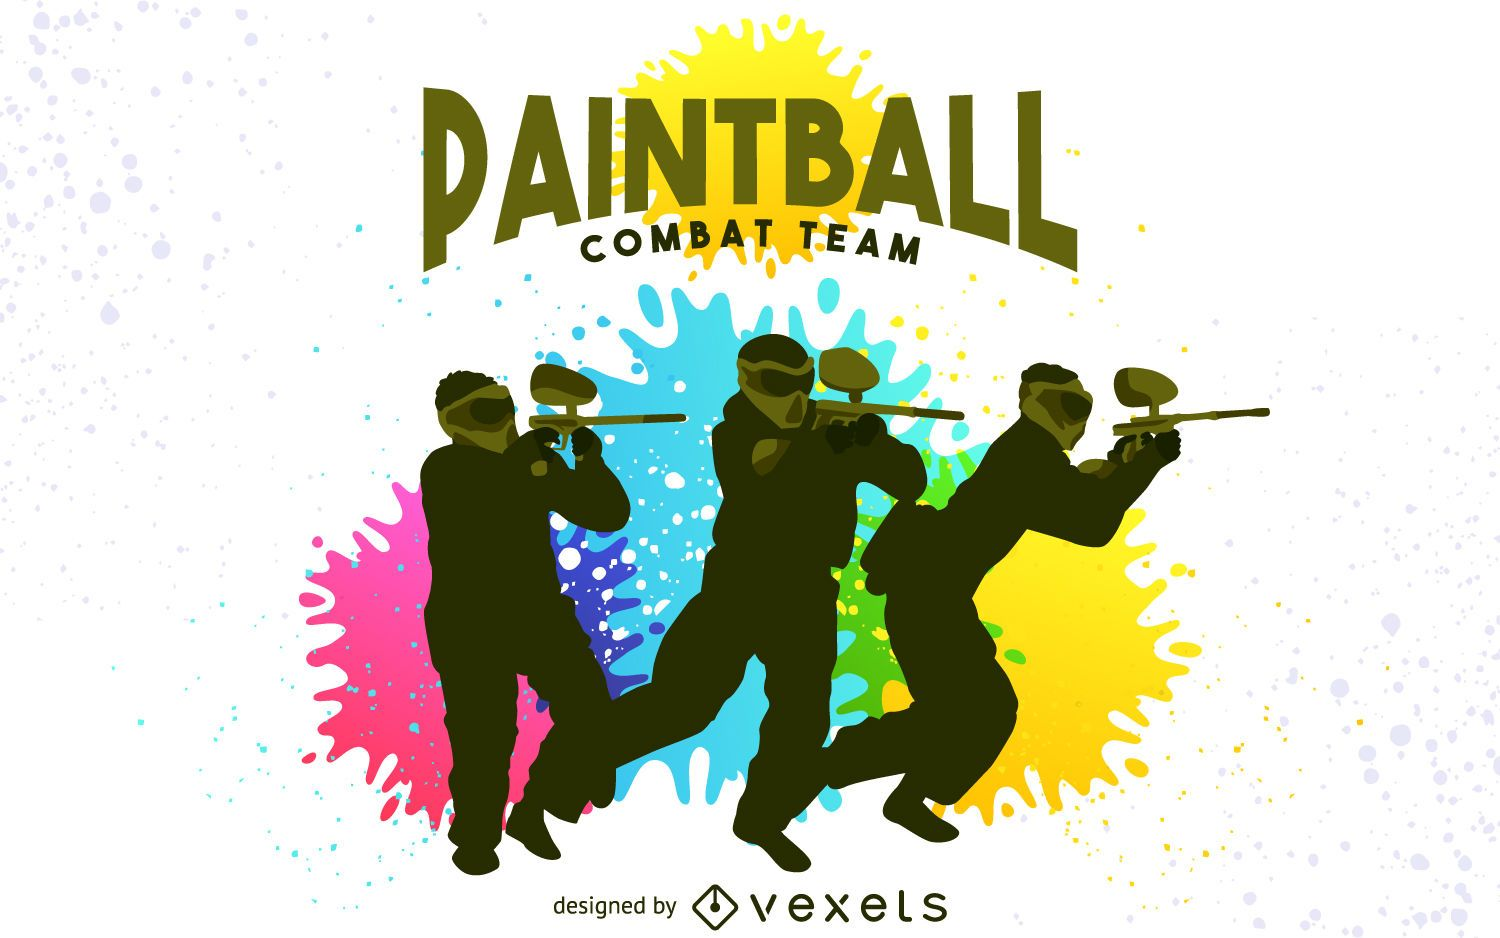 paintball silhouettes poster vector download target darts logo vector target darts logo vector